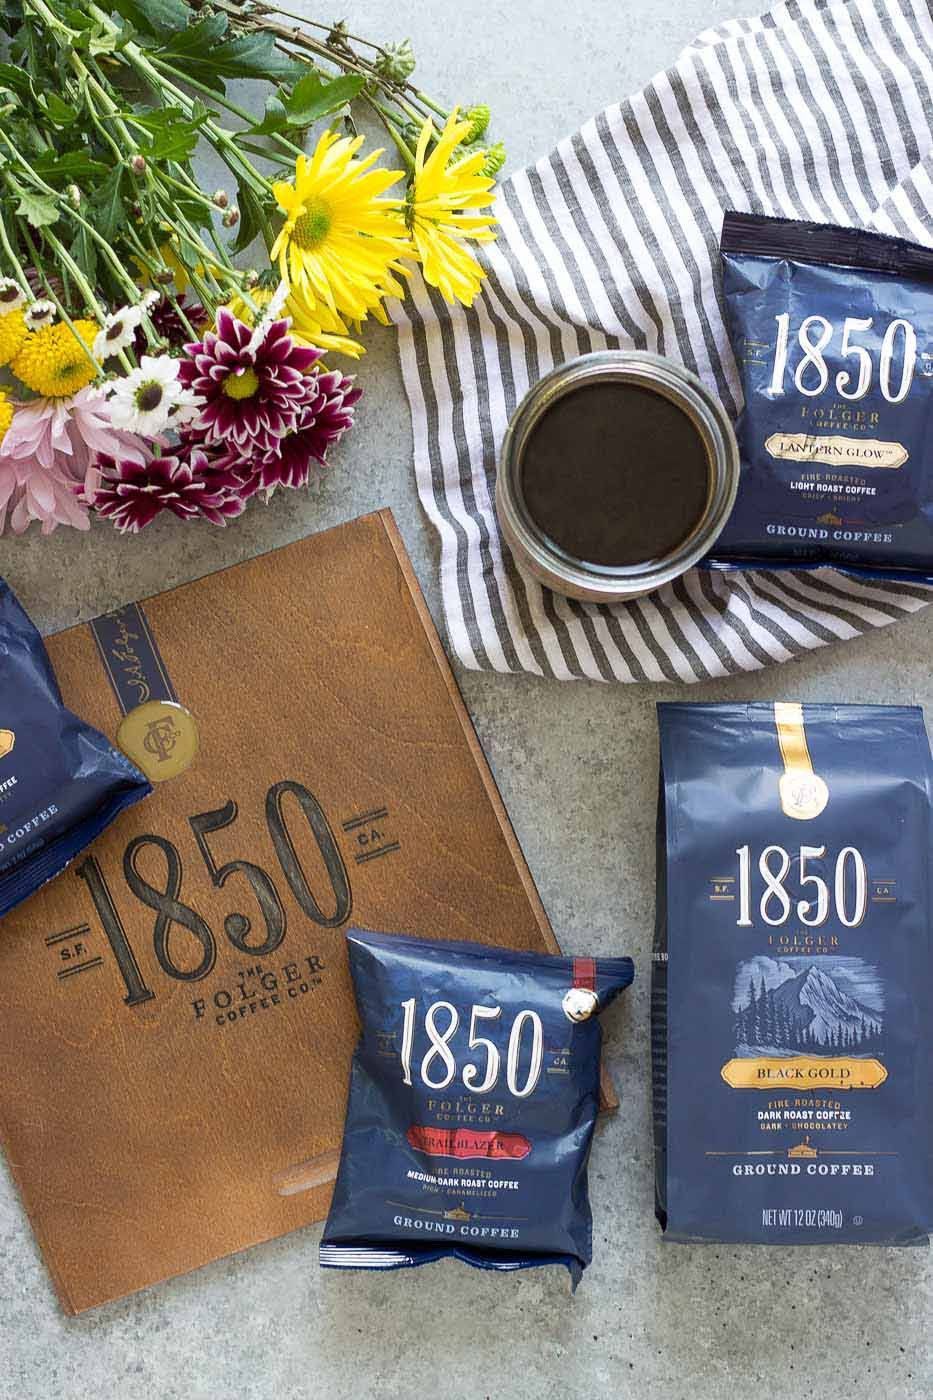 1850 Brand coffee is a new premium coffee from the makers